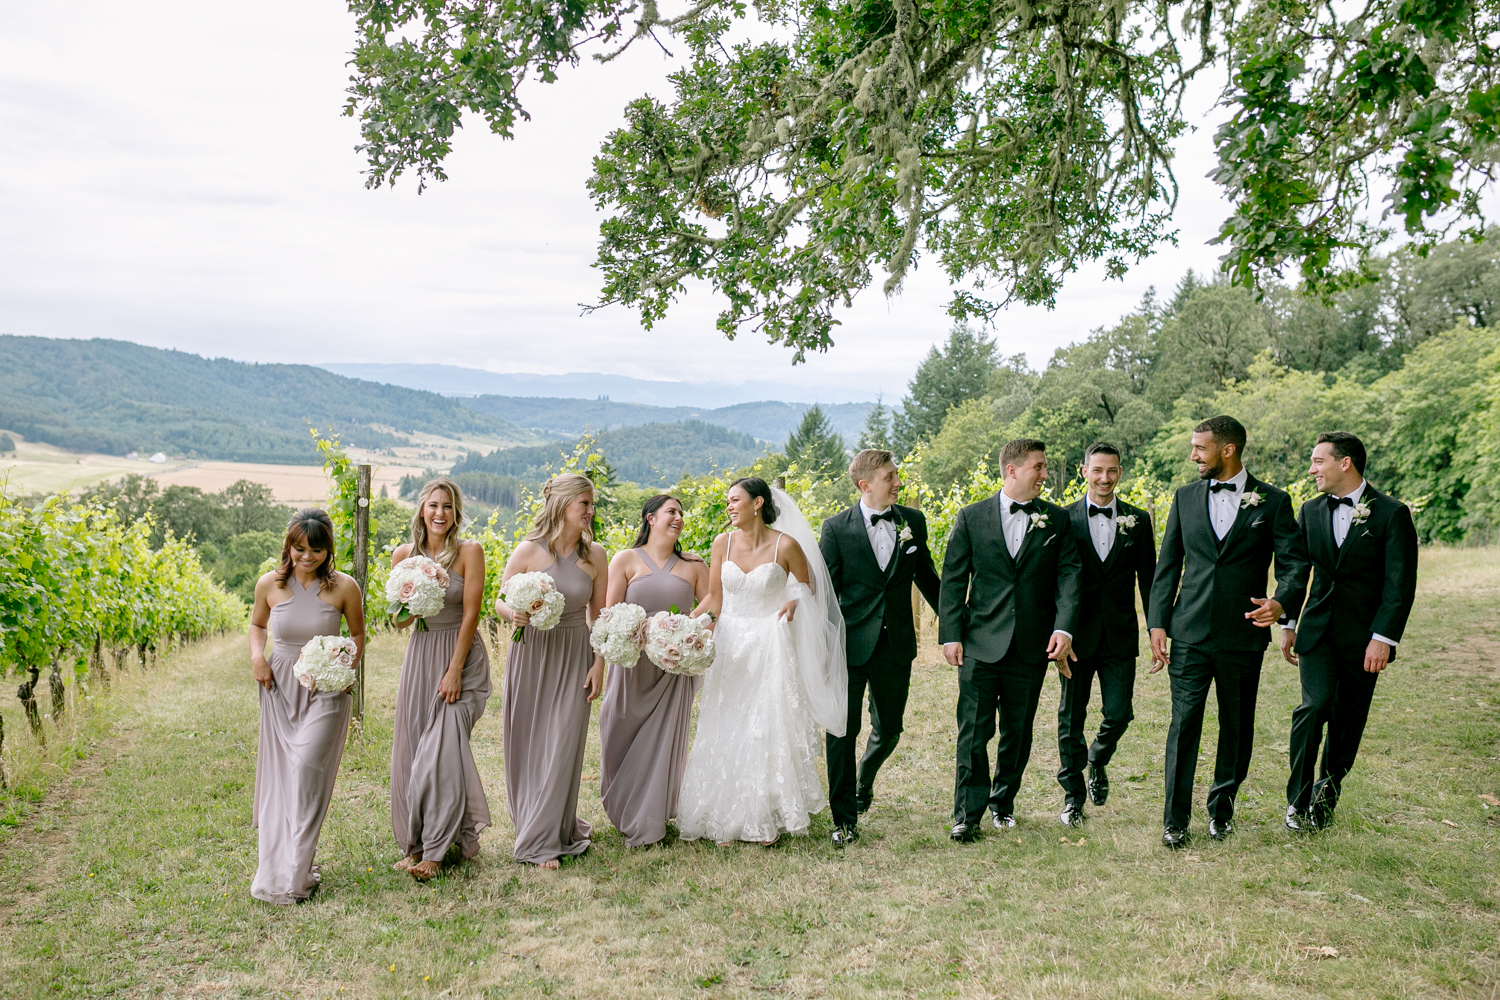 Youngberg Hill Vineyard Wedding in Wine Country Oregon - Corrie Mick Photography-138.jpg